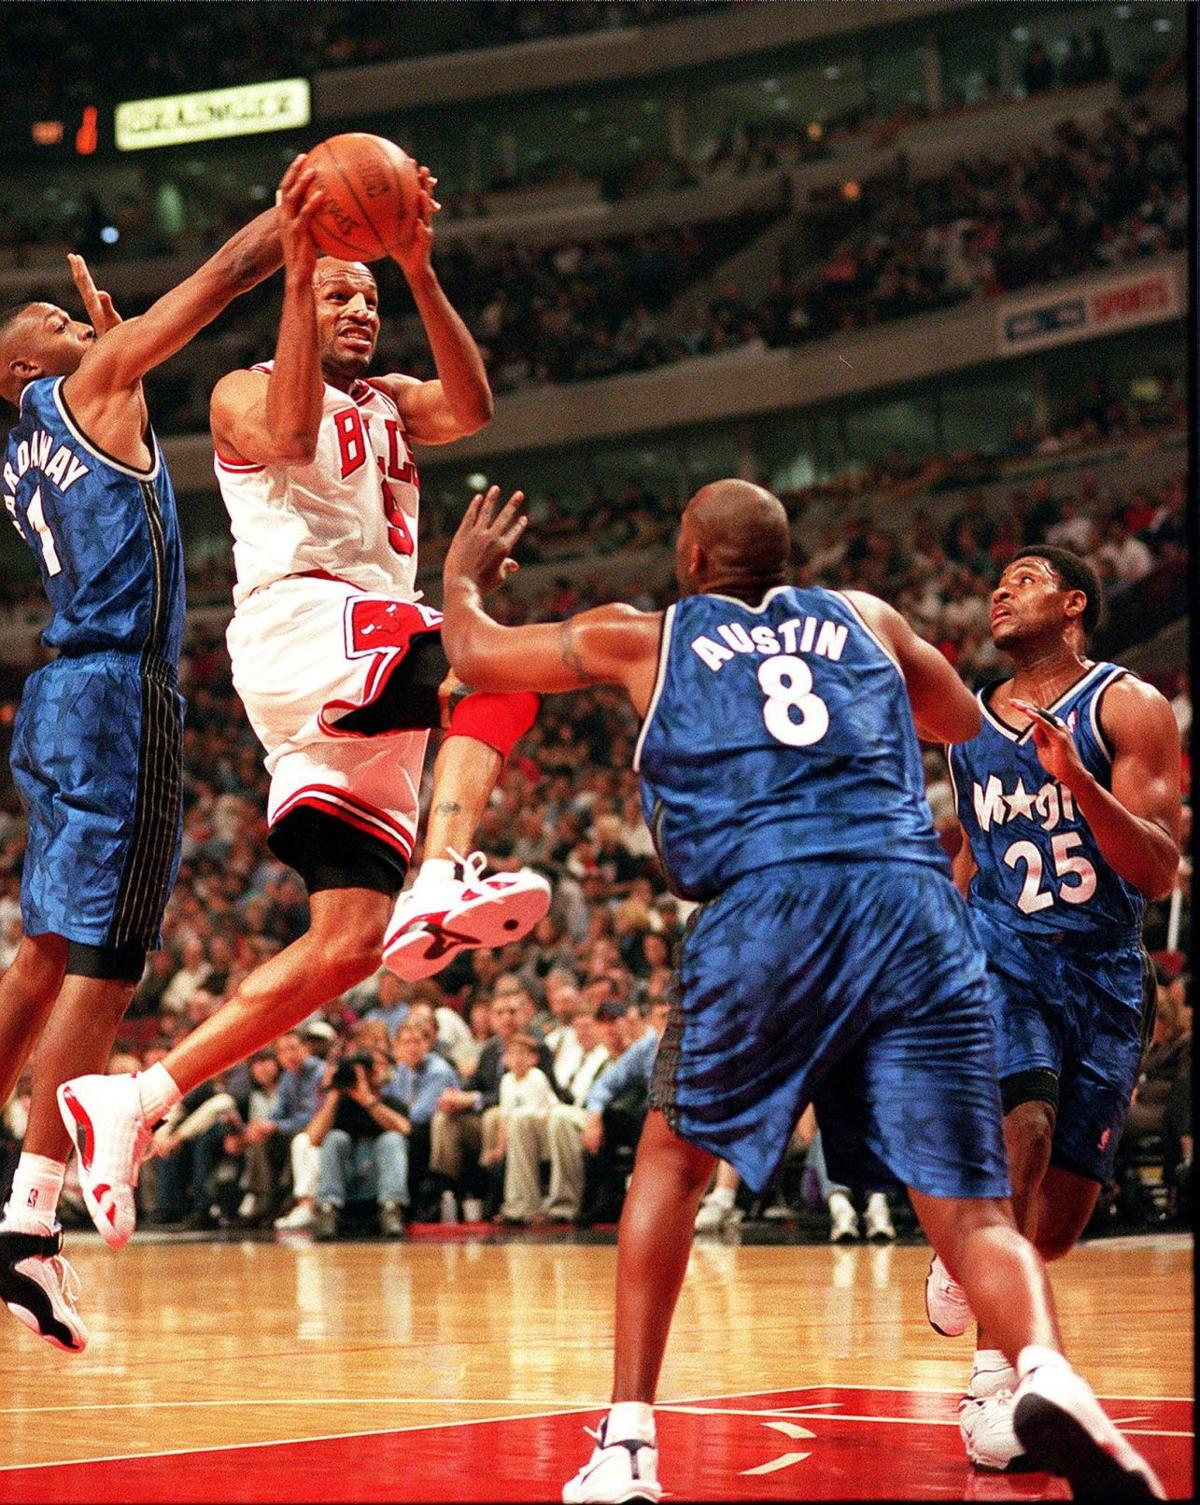 Bulls guard Ron Harper tries to shoot while surrounded by Magic players Anfernee Hardaway, left, Isaac Austin and Nick Anderson during a game at the United Center on May 5, 1999.